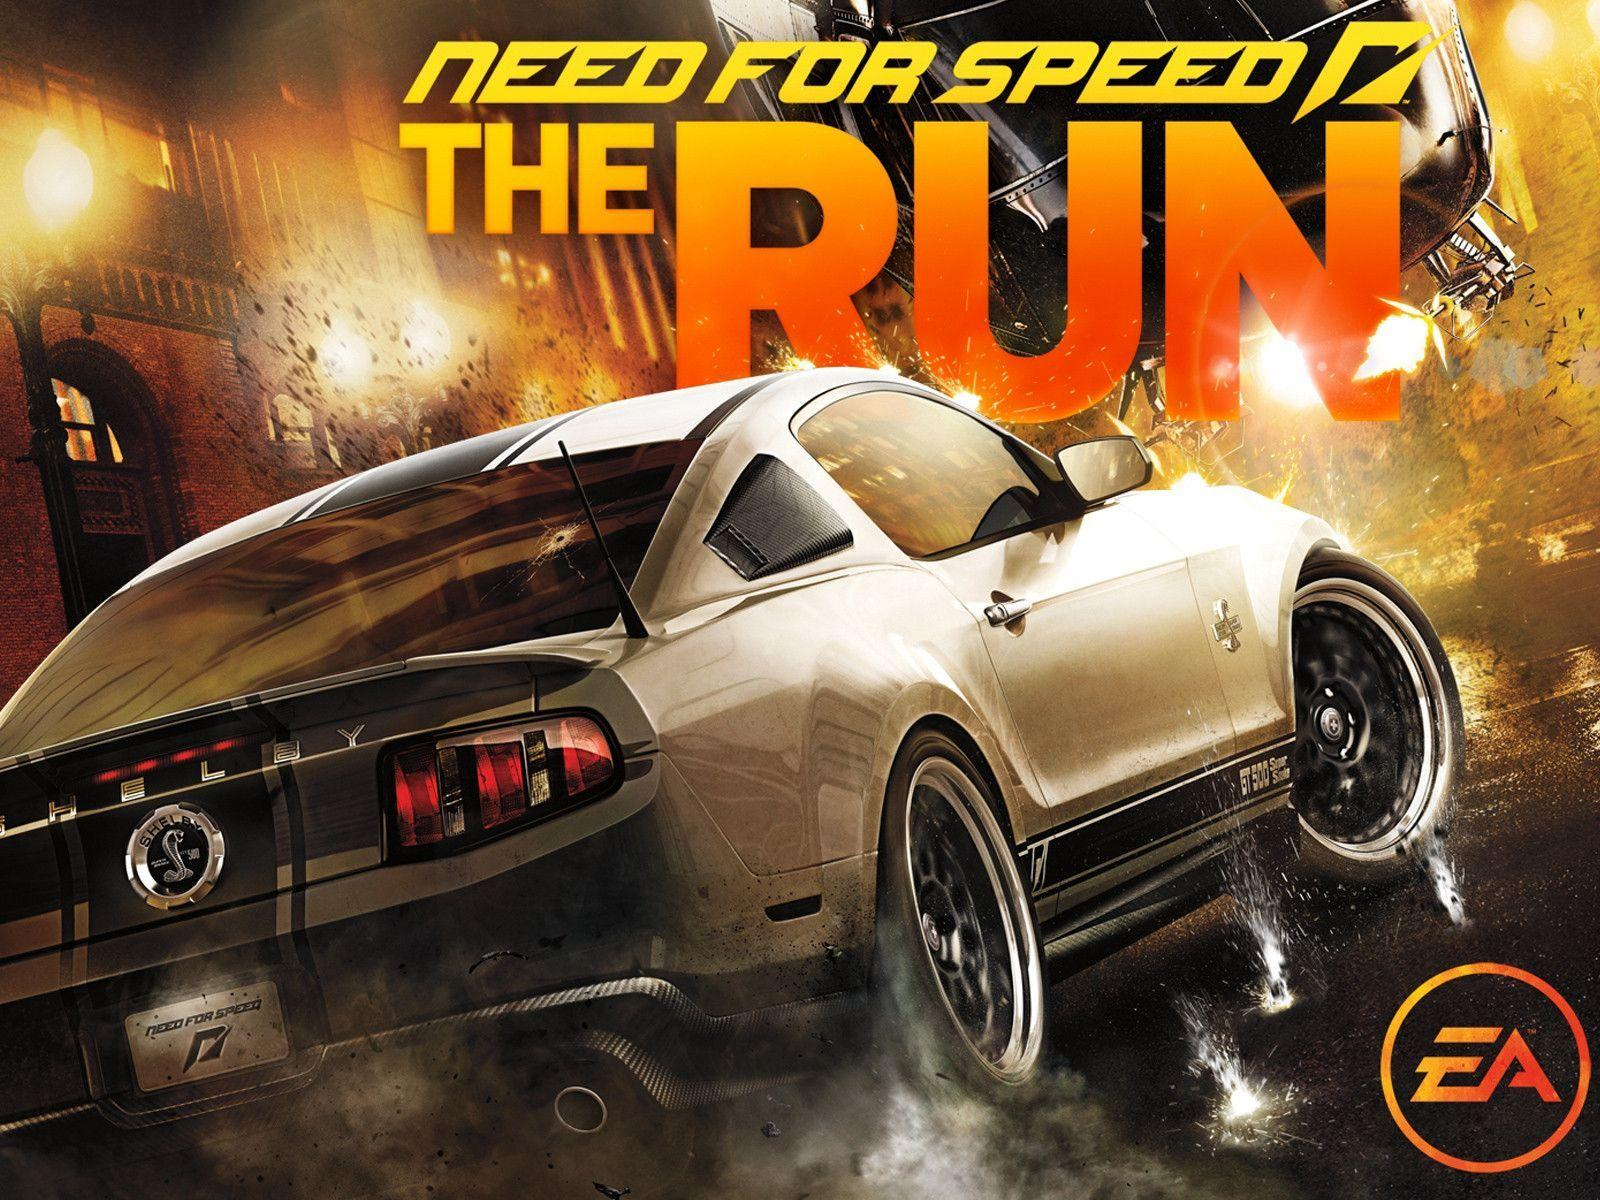 2011 Need for Speed The Run Wallpapers | HD Wallpapers